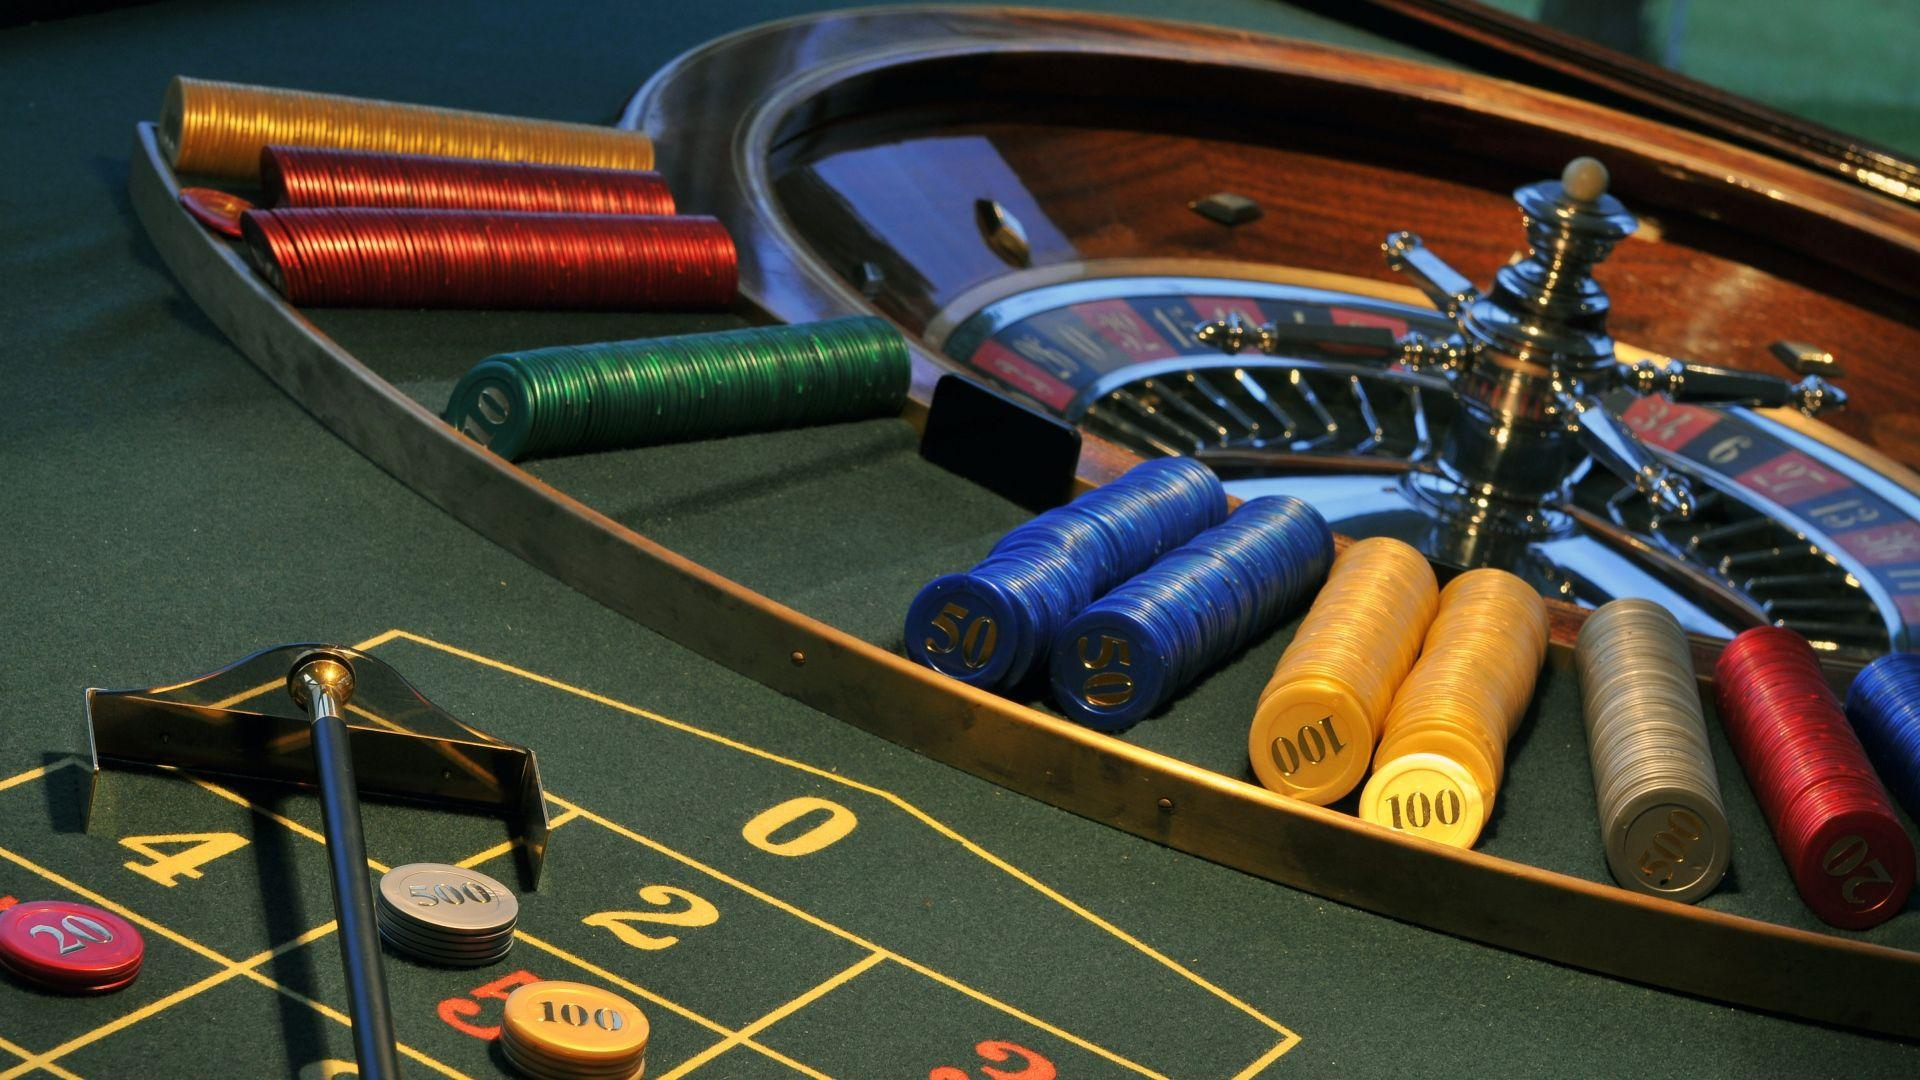 What Make Casino Don't want You To Know